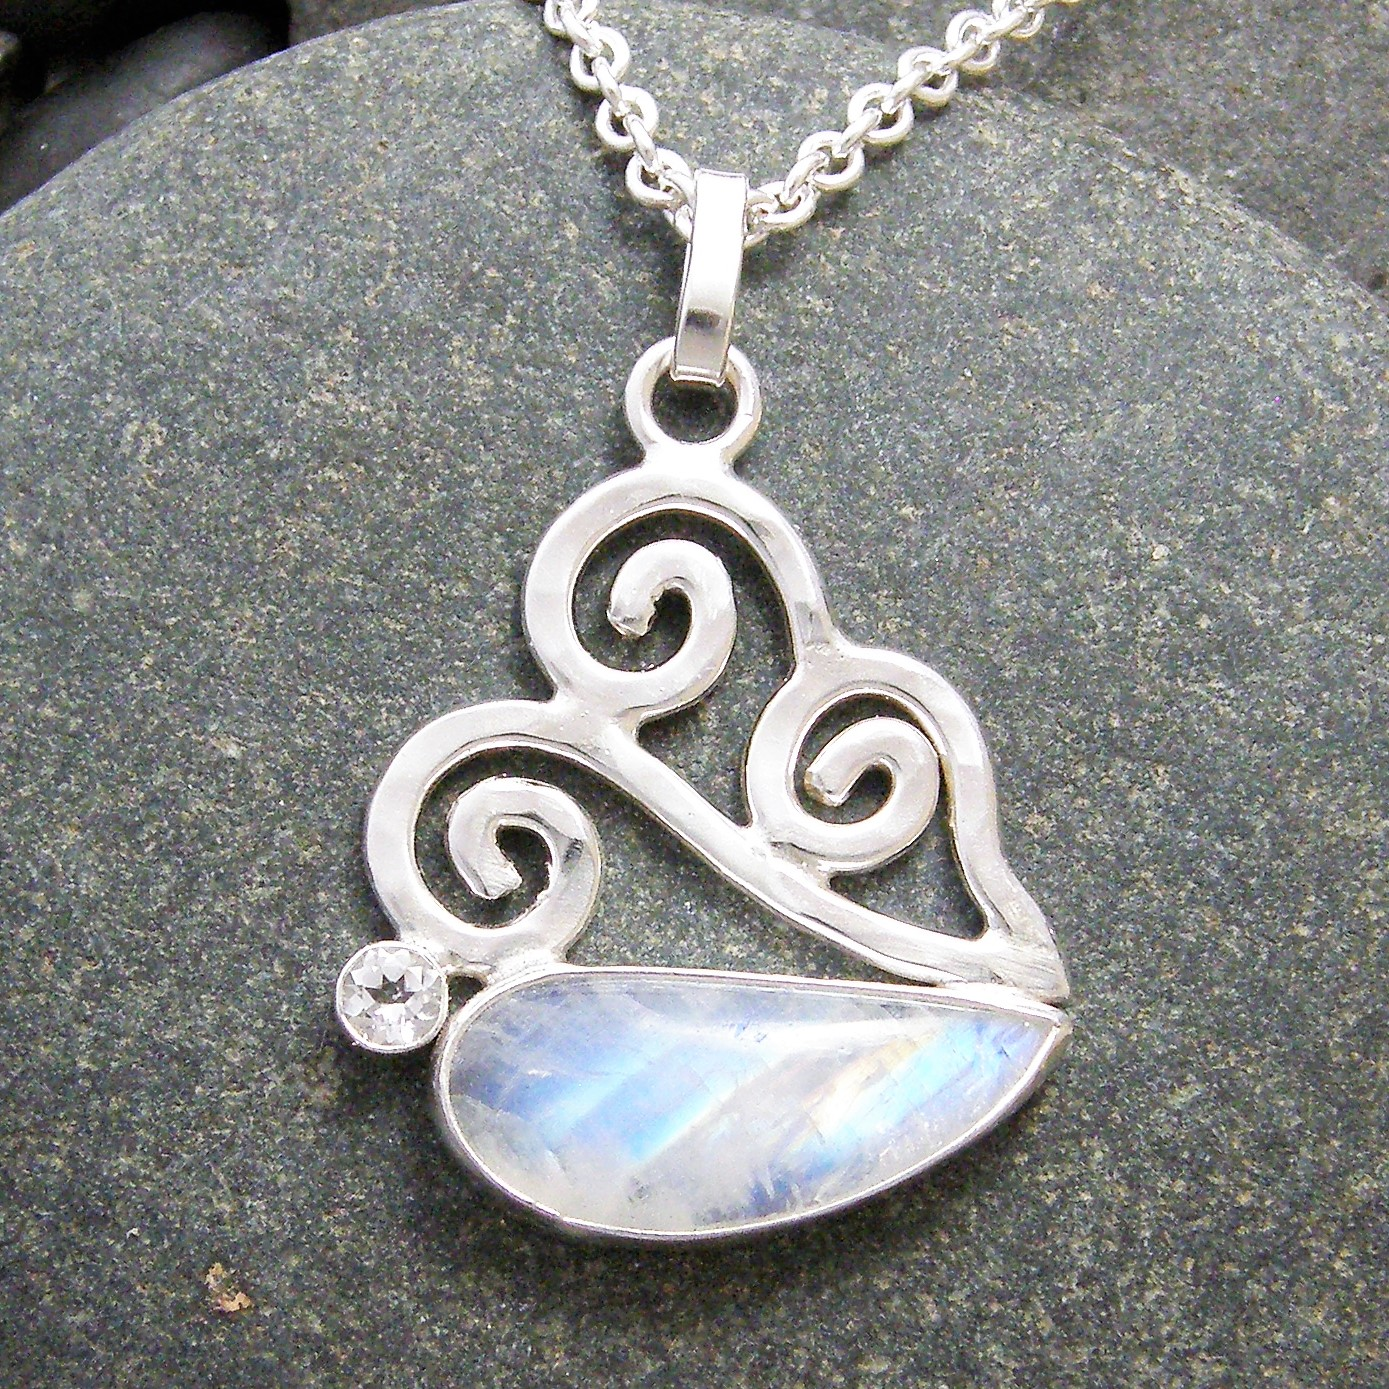 supplies p gemstone moon silver stone shaped x fullxfull moonstone il bezel faceted debl product pendant heart htm teardrop natural measuring sterling component sv ssbzmsr